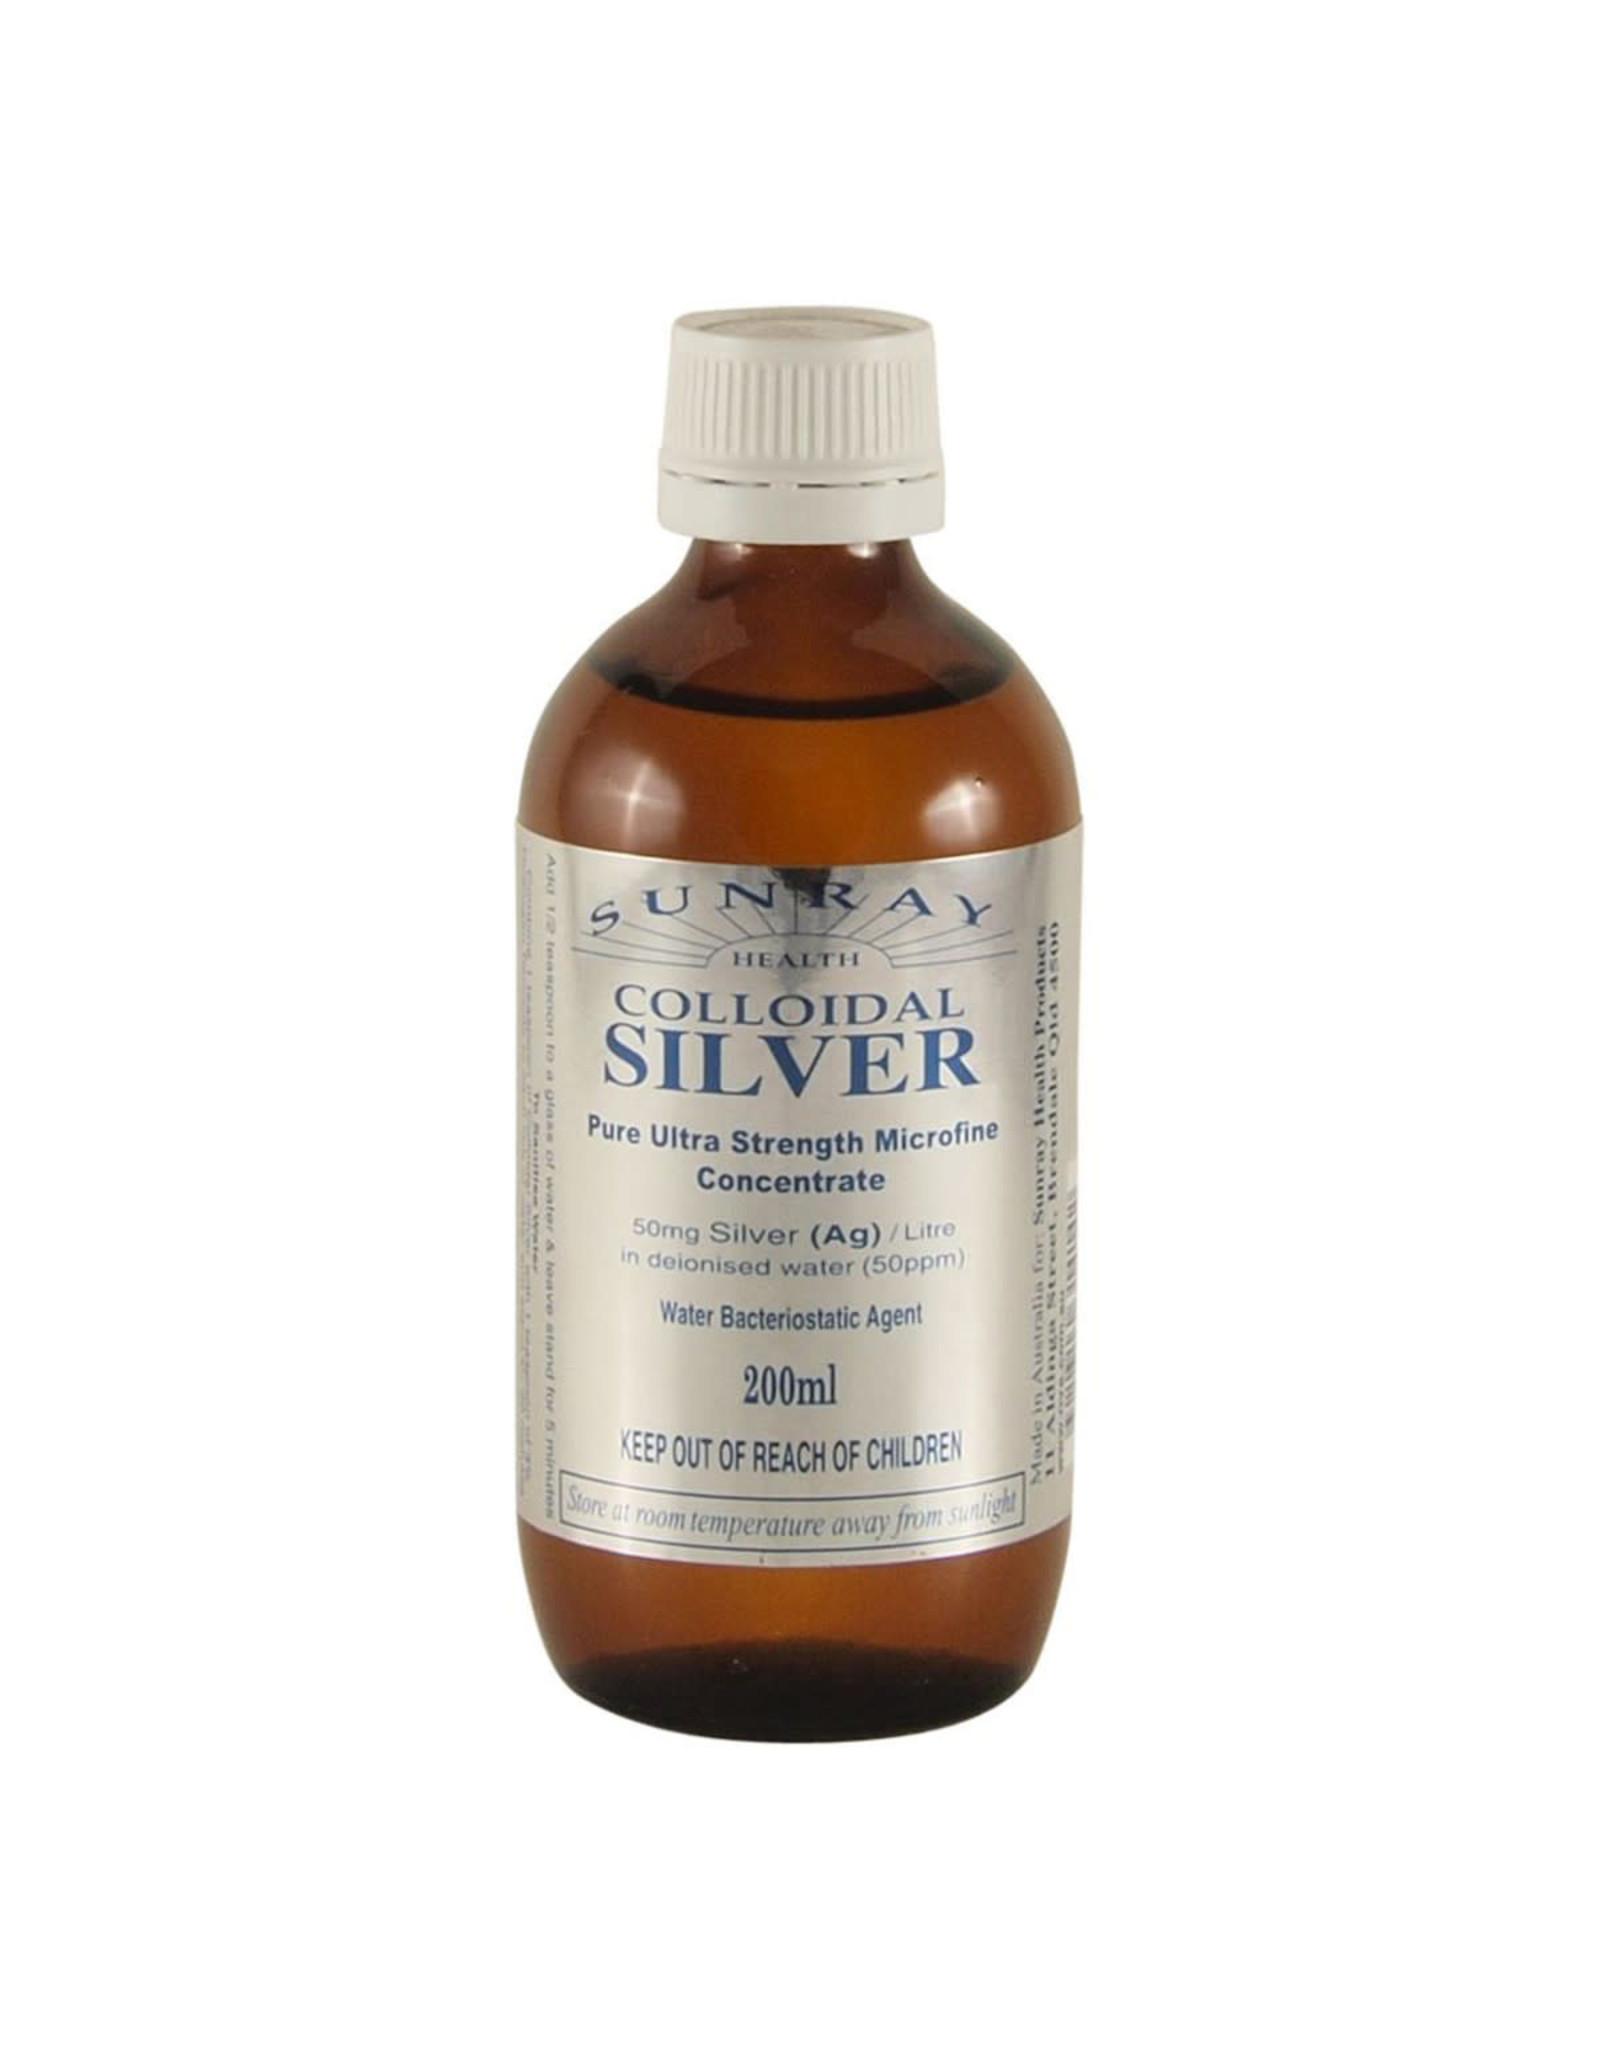 Sunray Colloidal Silver 200ml